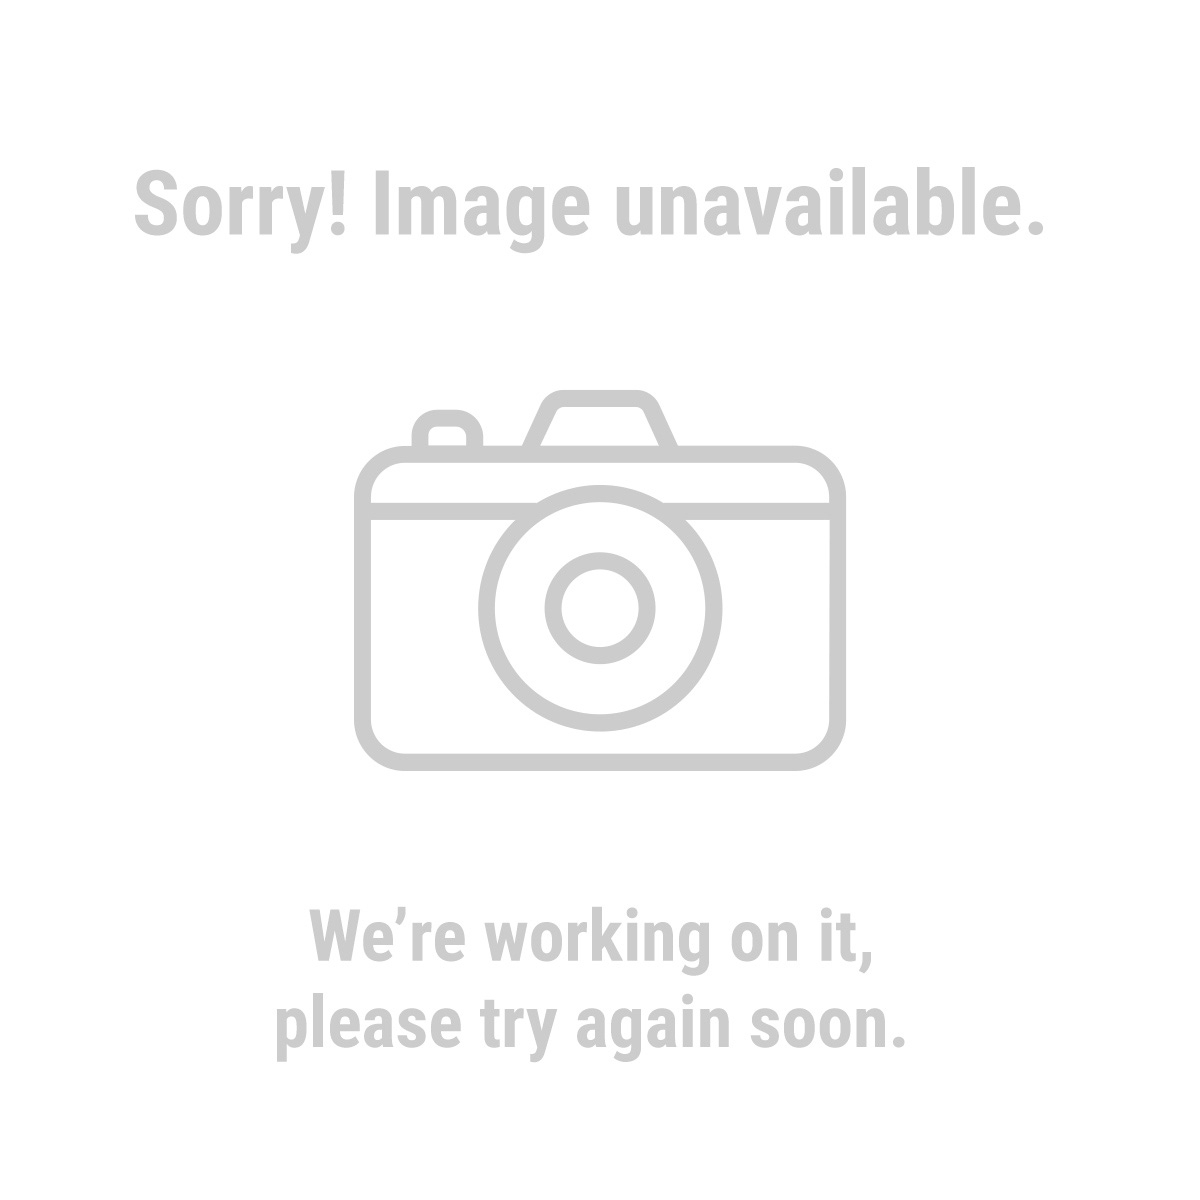 Vanguard 62949 25 ft. x 12 Gauge Outdoor Extension Cord